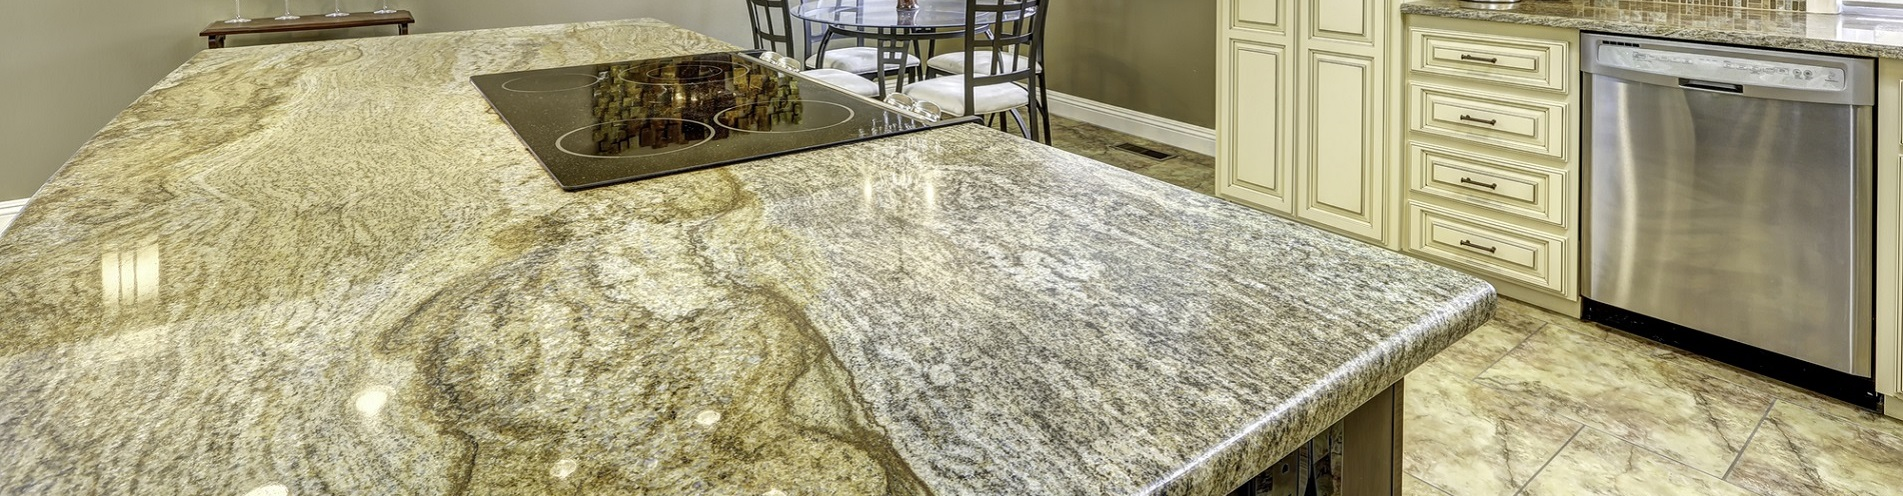 granite countertops contractor Utah